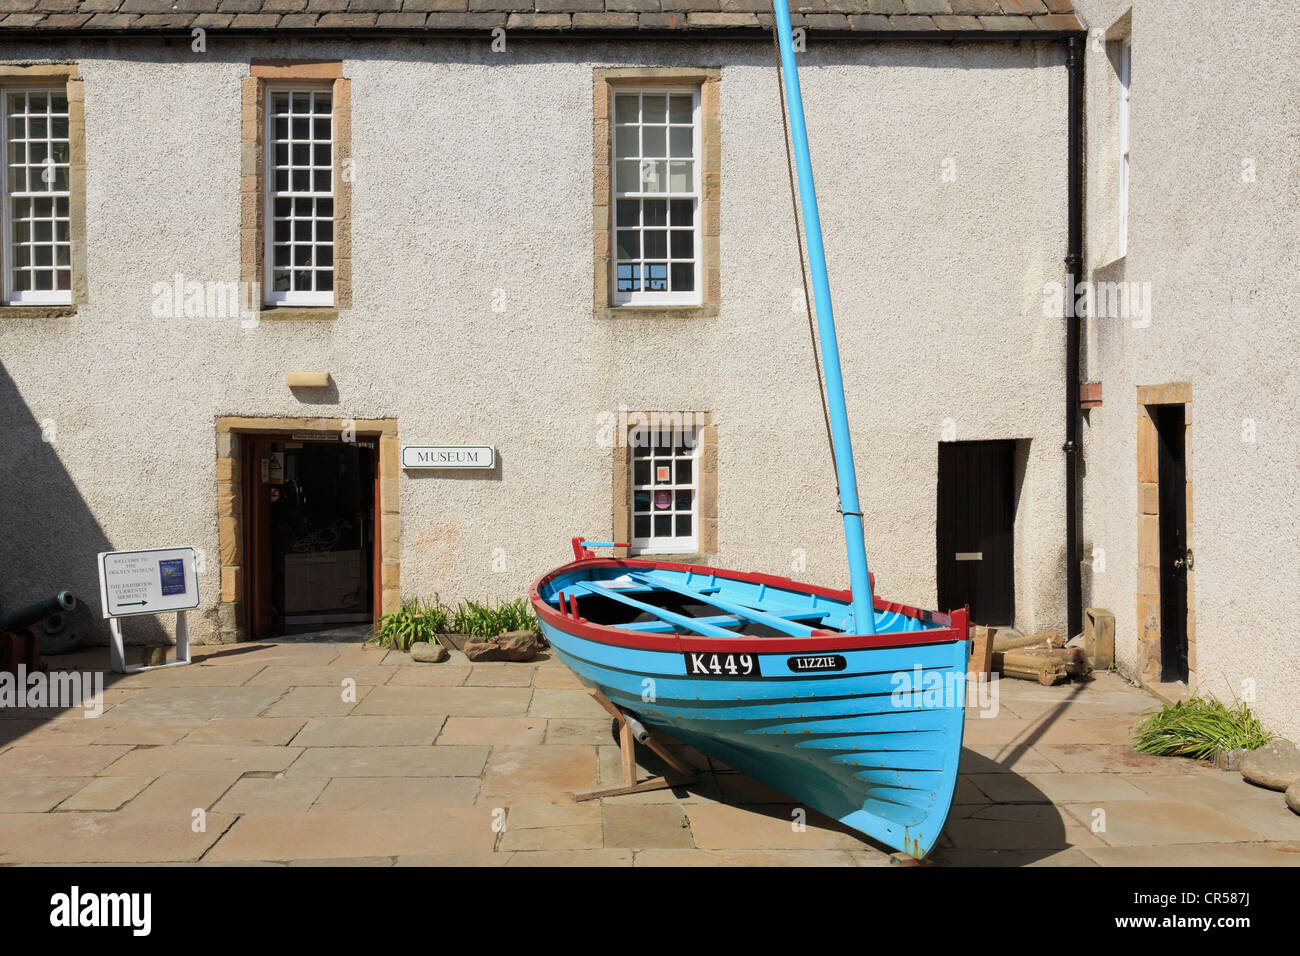 Boat by the front entrance to Orkney Museum in Tankerness House, Broad Street, Kirkwall, Orkney Islands, Scotland, - Stock Image